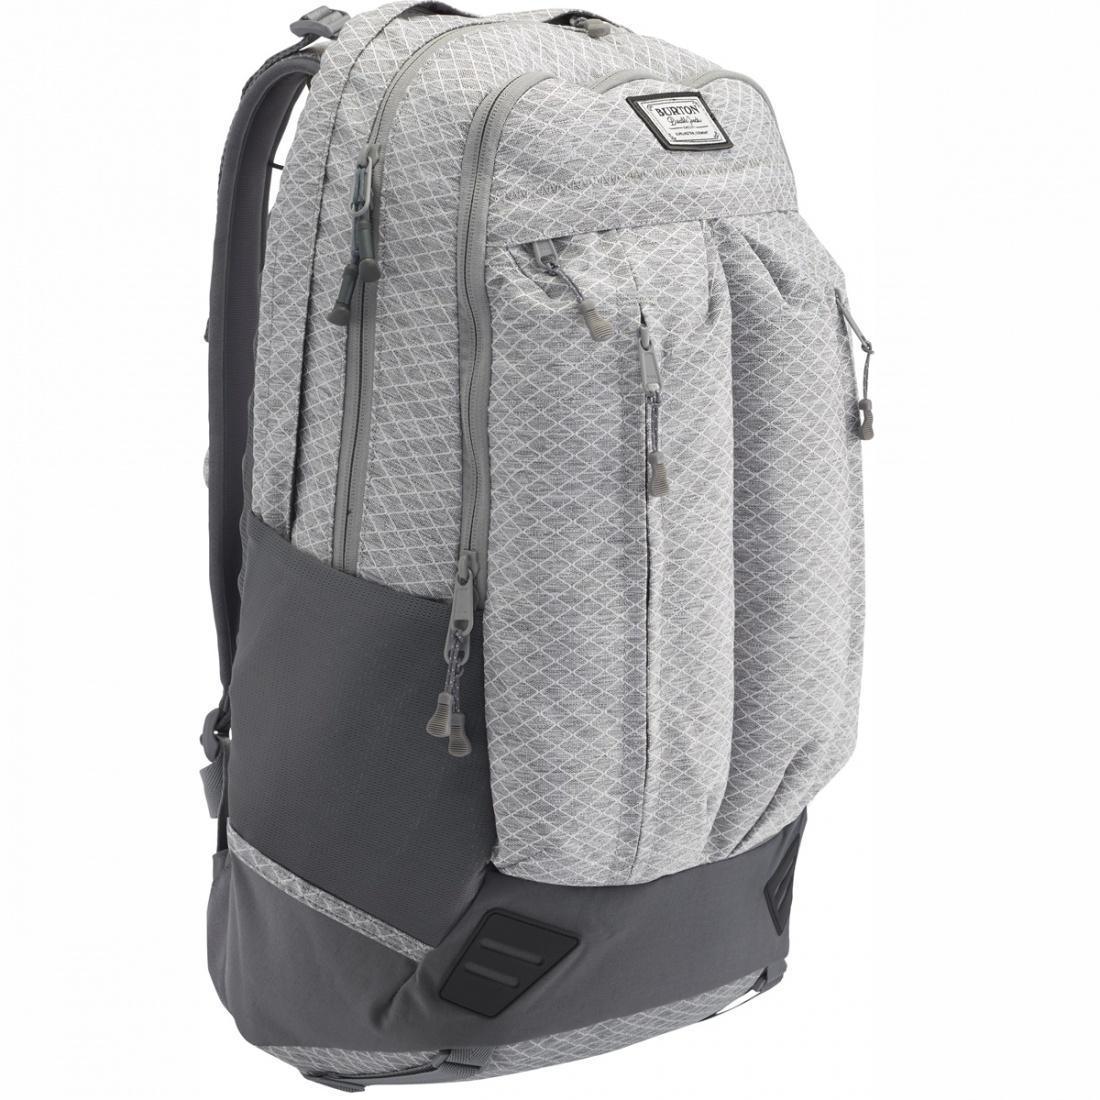 Burton Рюкзак Burton Bravo Backpack One size burton рюкзак bravo pack gry hthr dimnd rpstp fw17